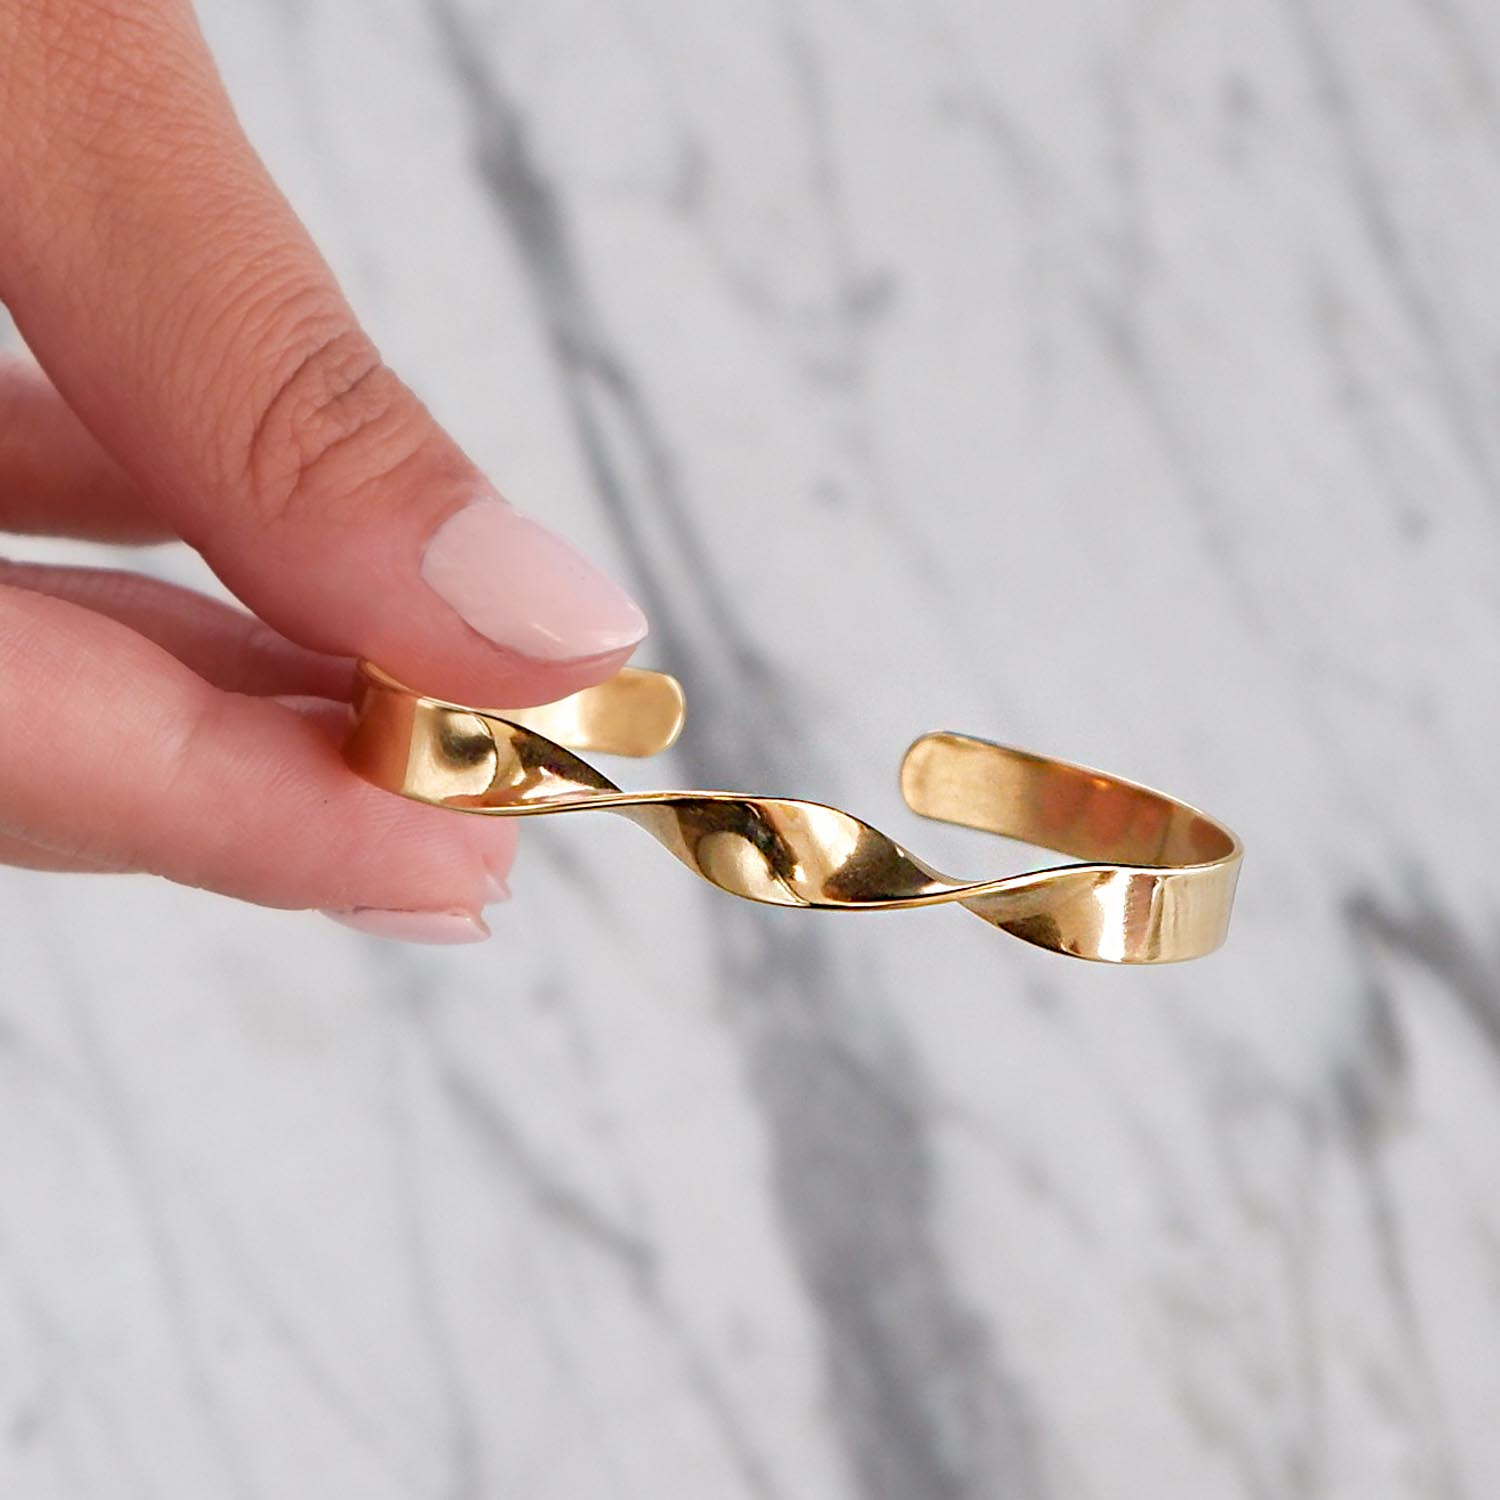 Mooie goudkleurige bangle in de hand